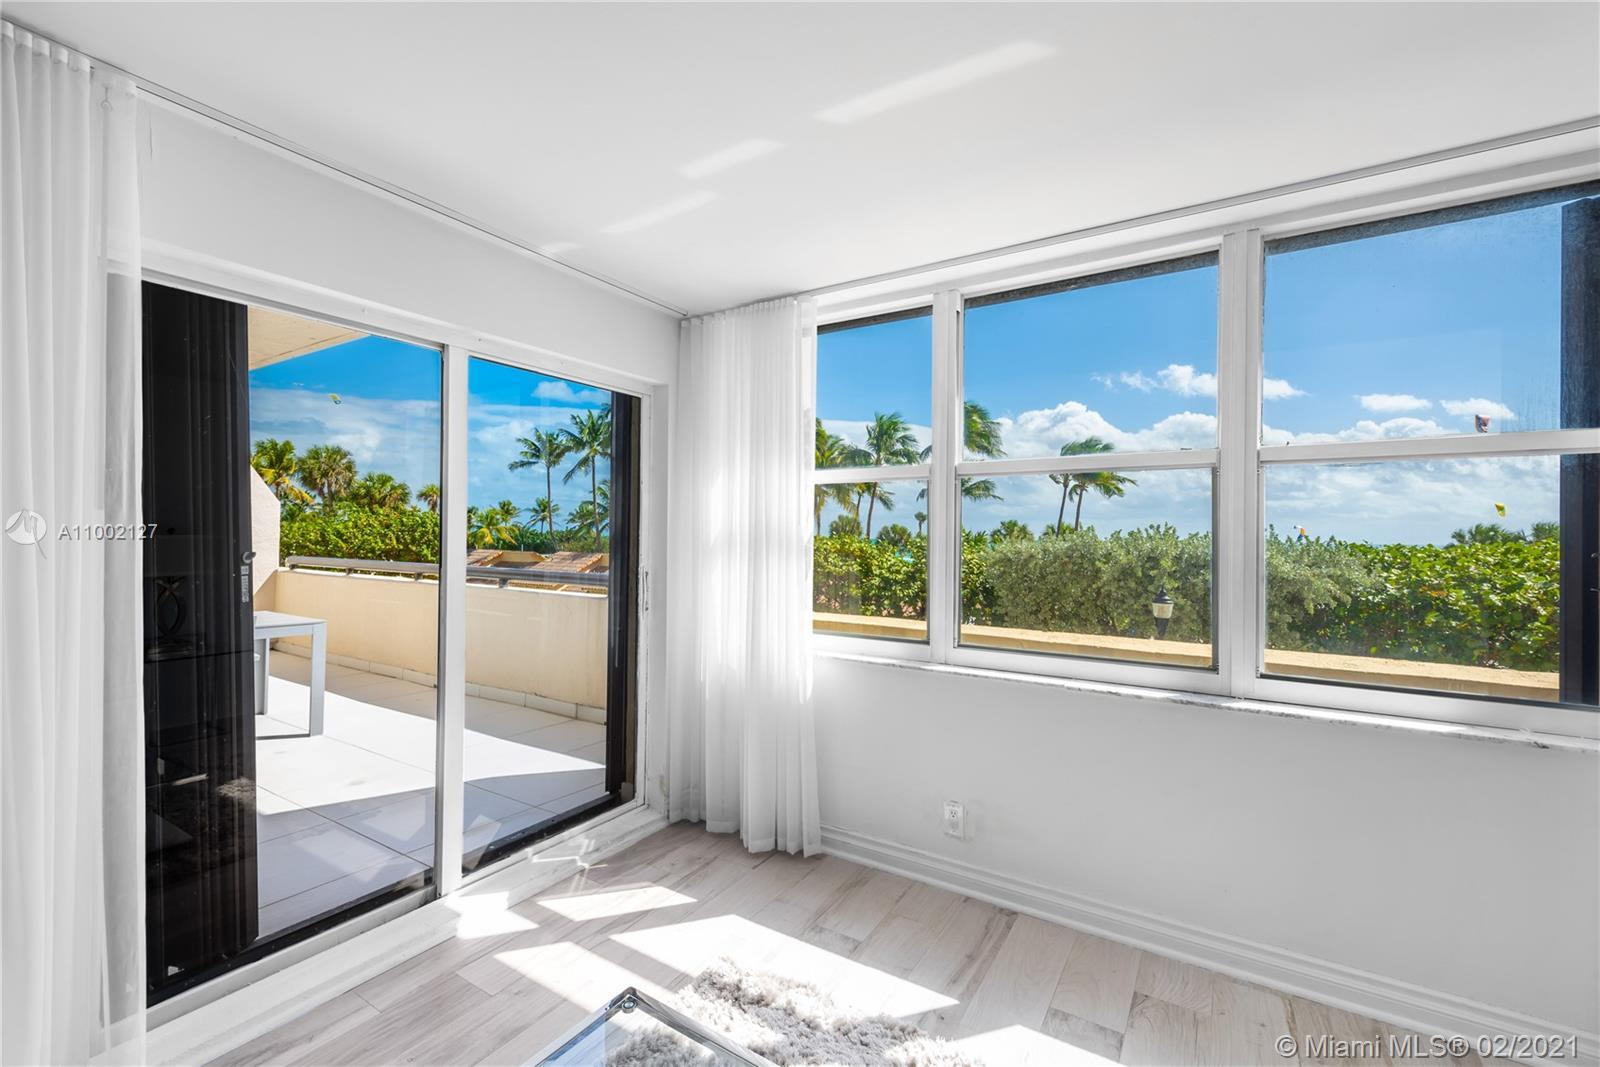 Are you looking for a spacious and relaxing oceanfront home in the heart of Miami Beach? A place com